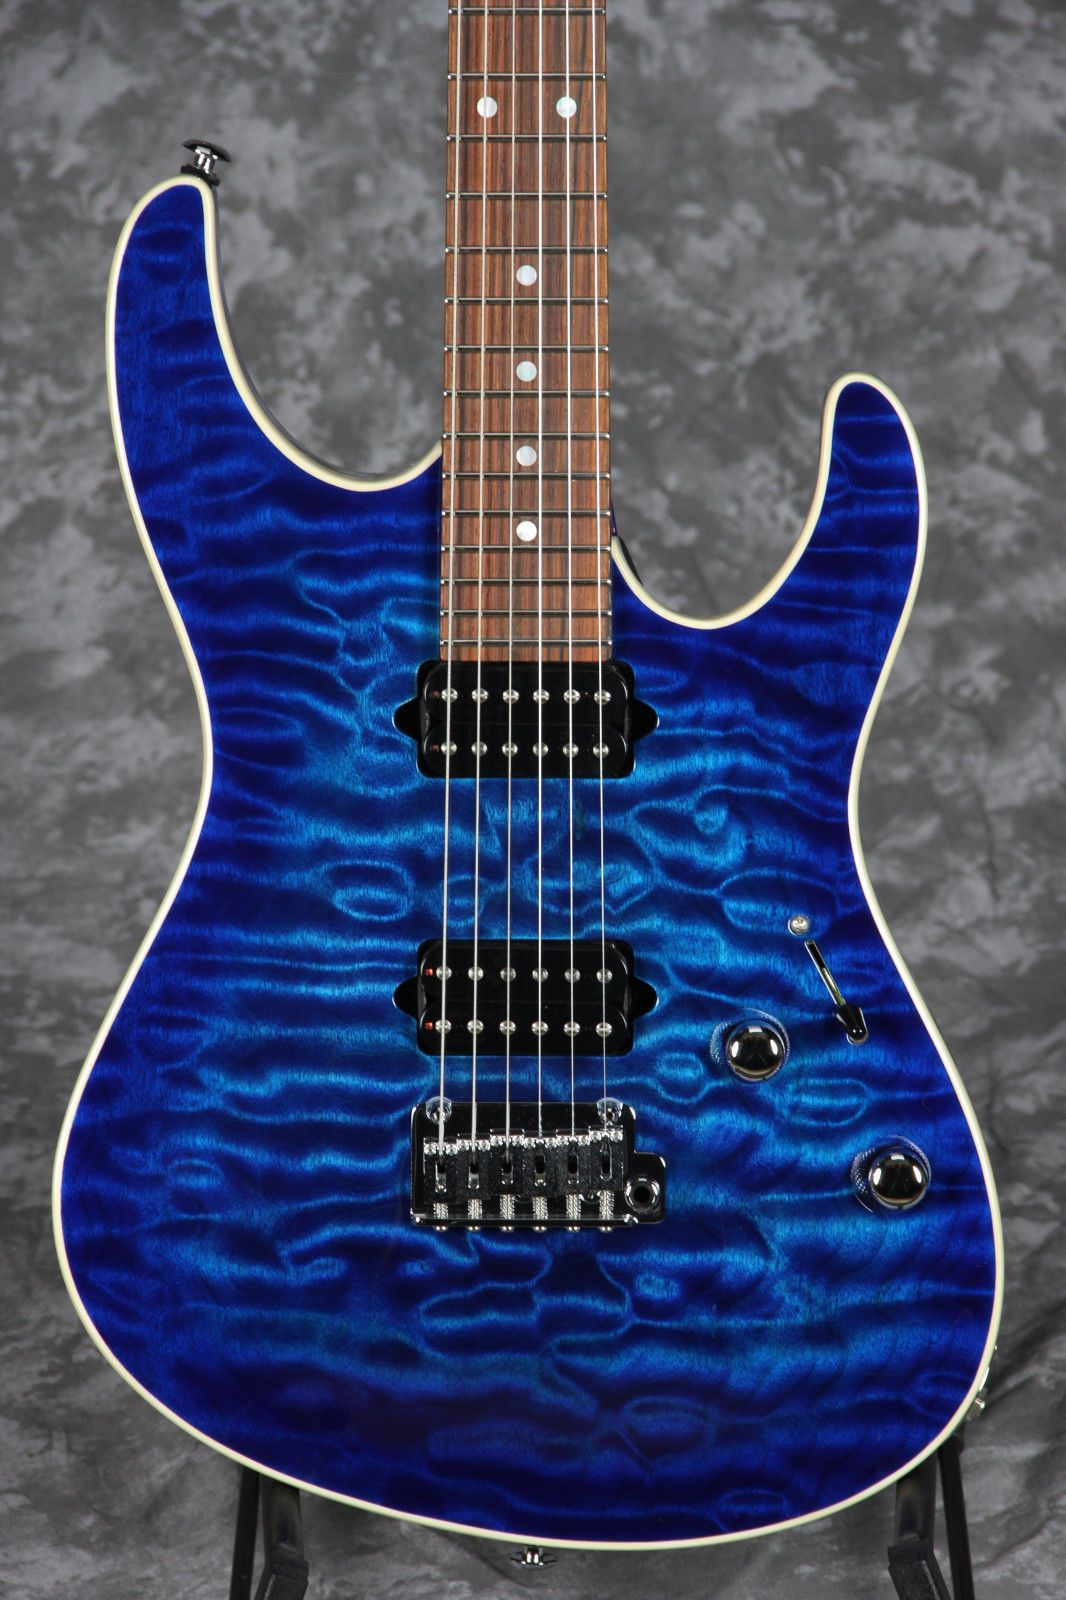 Suhr Modern Carve Top One Piece Quilted Maple Body Guitars In 2018 Jackson Js22 7 Wire Diagram